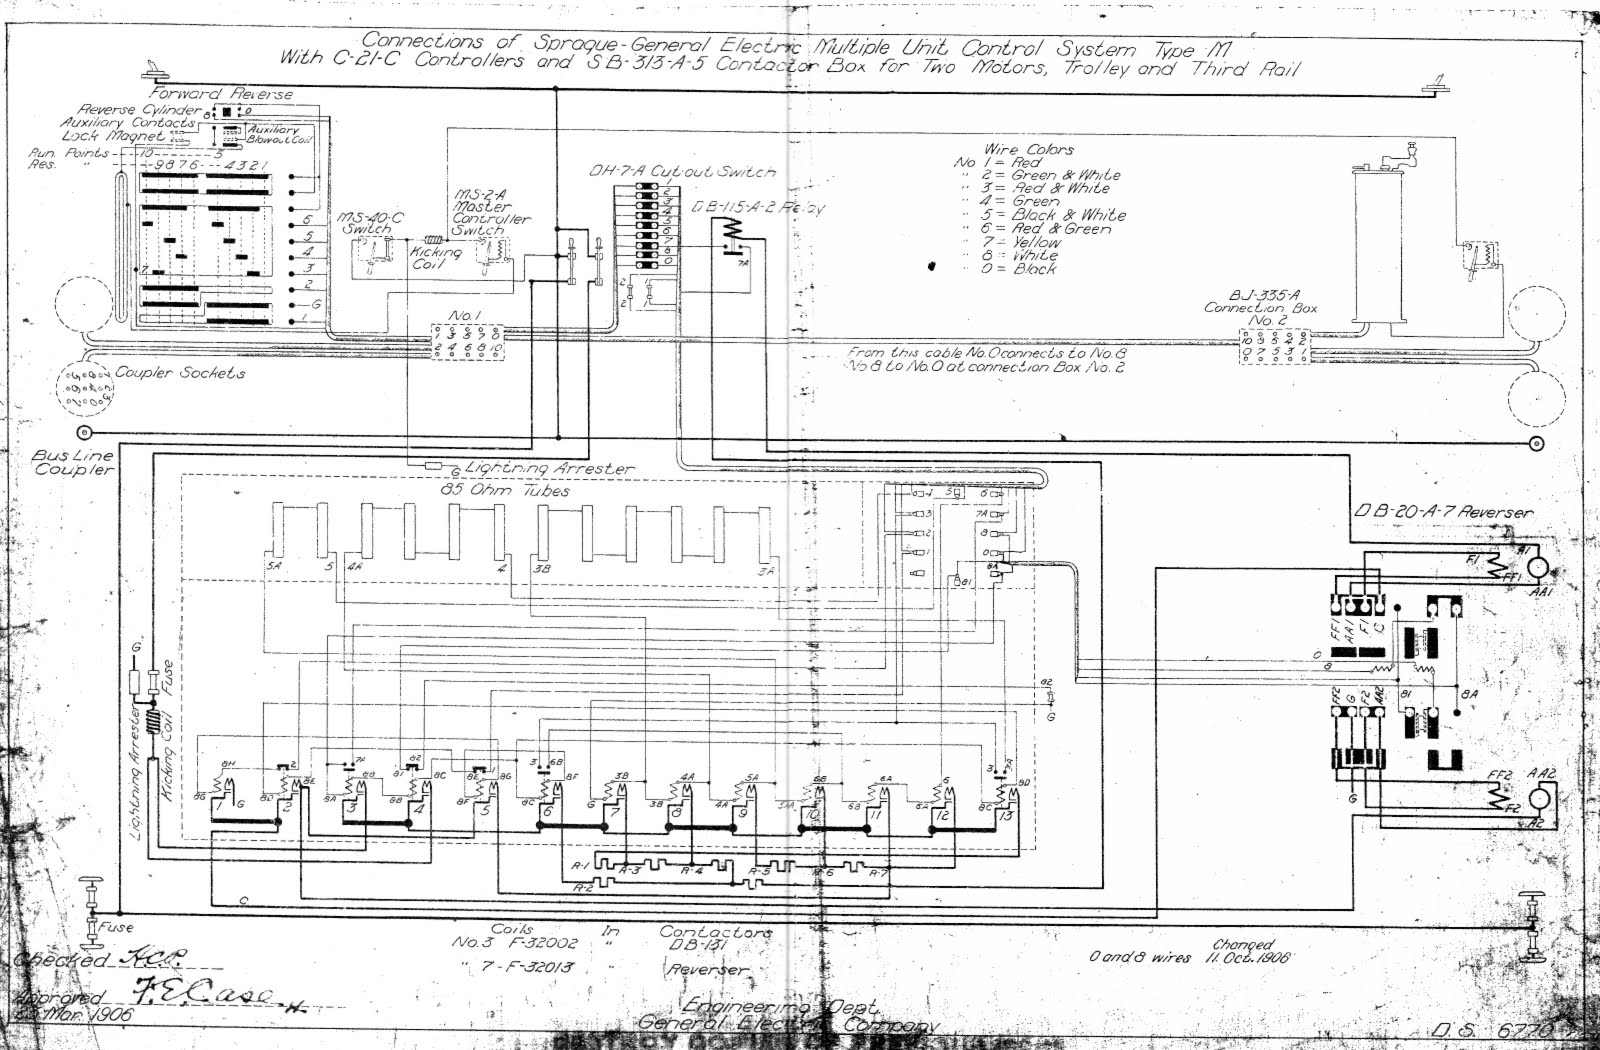 mack cx613 wiring diagram mack cv712 wiring diagram